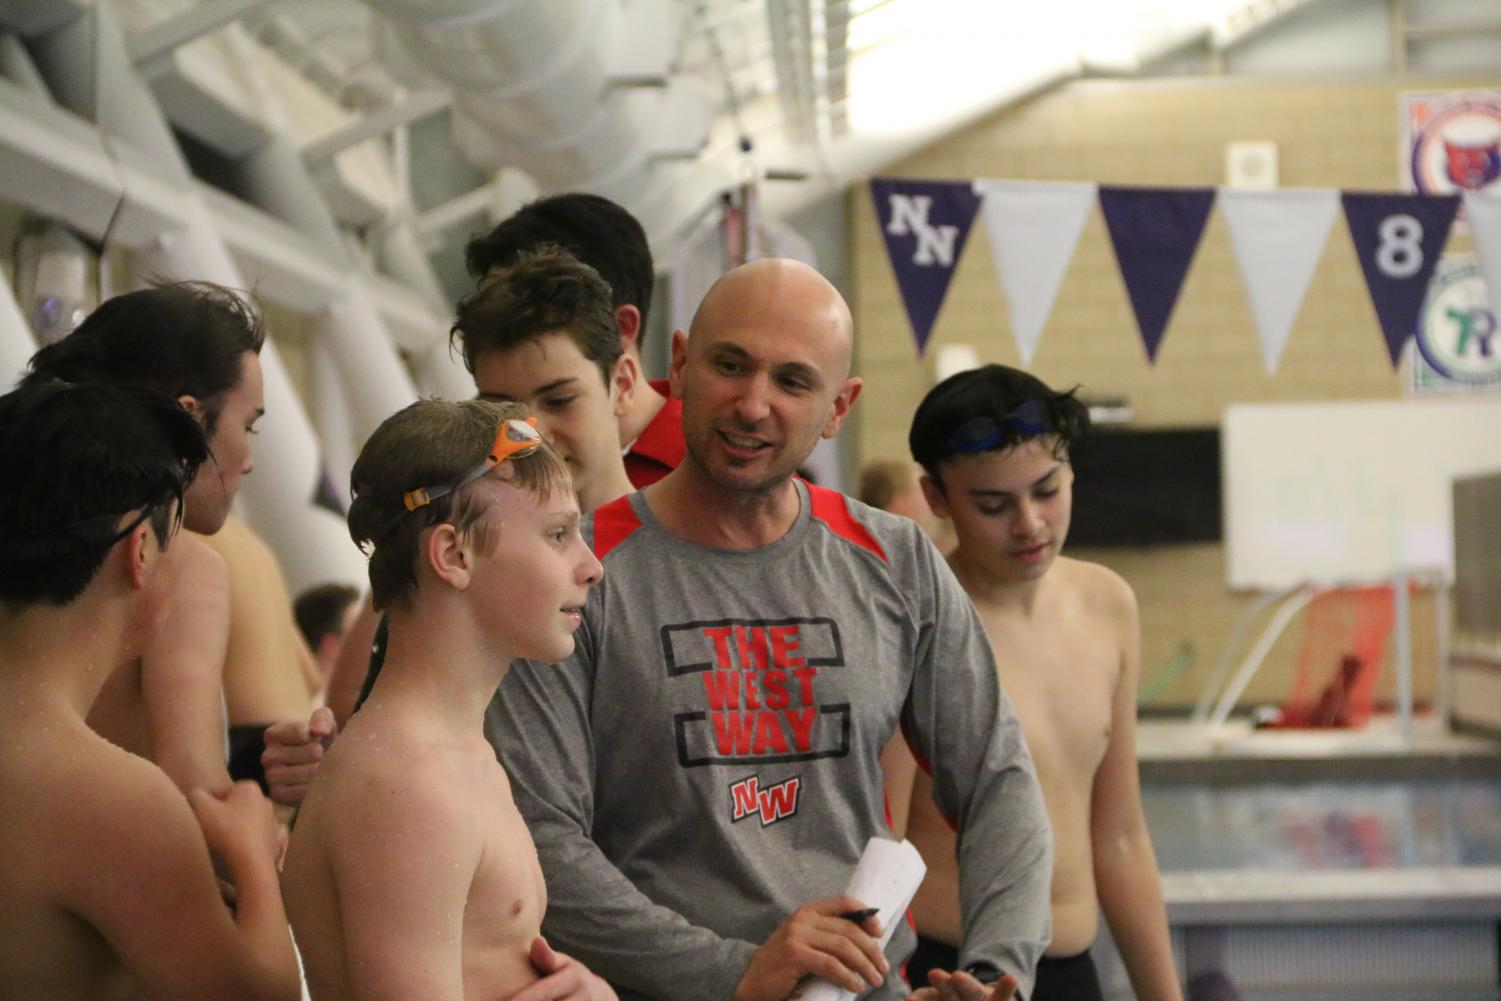 Coach+Macejak+talking+to+one+of+his+swimmers.